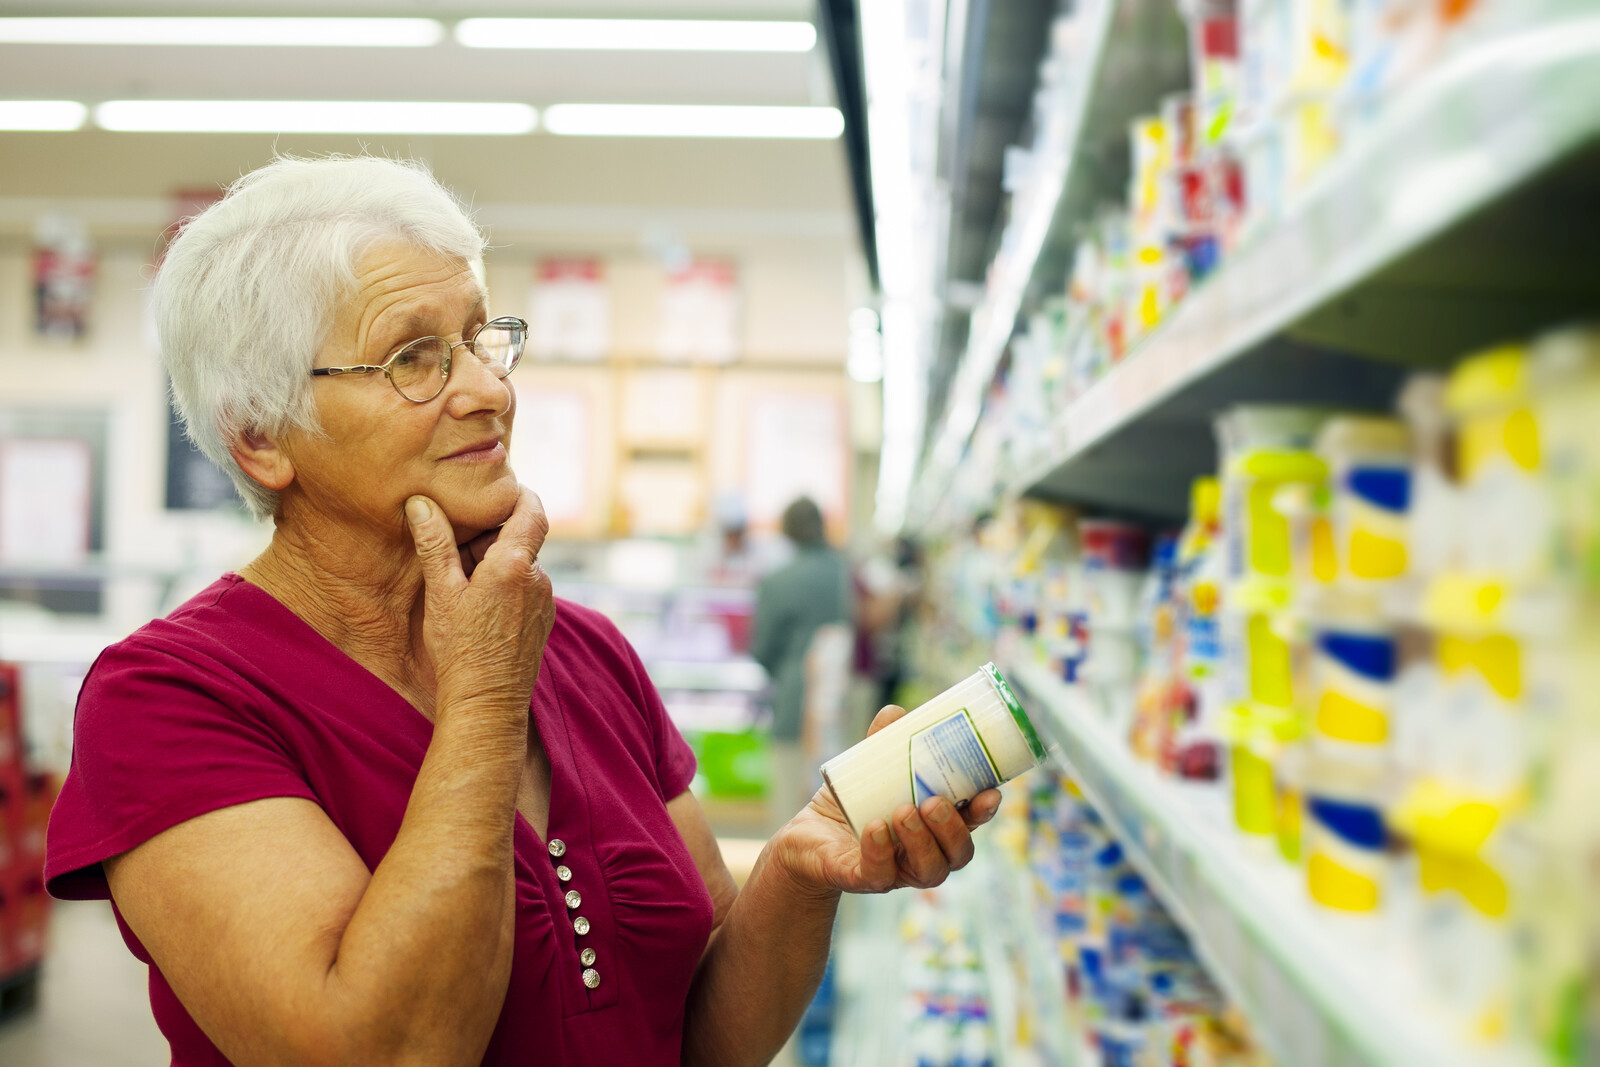 Senior woman pondering options at a grocery store